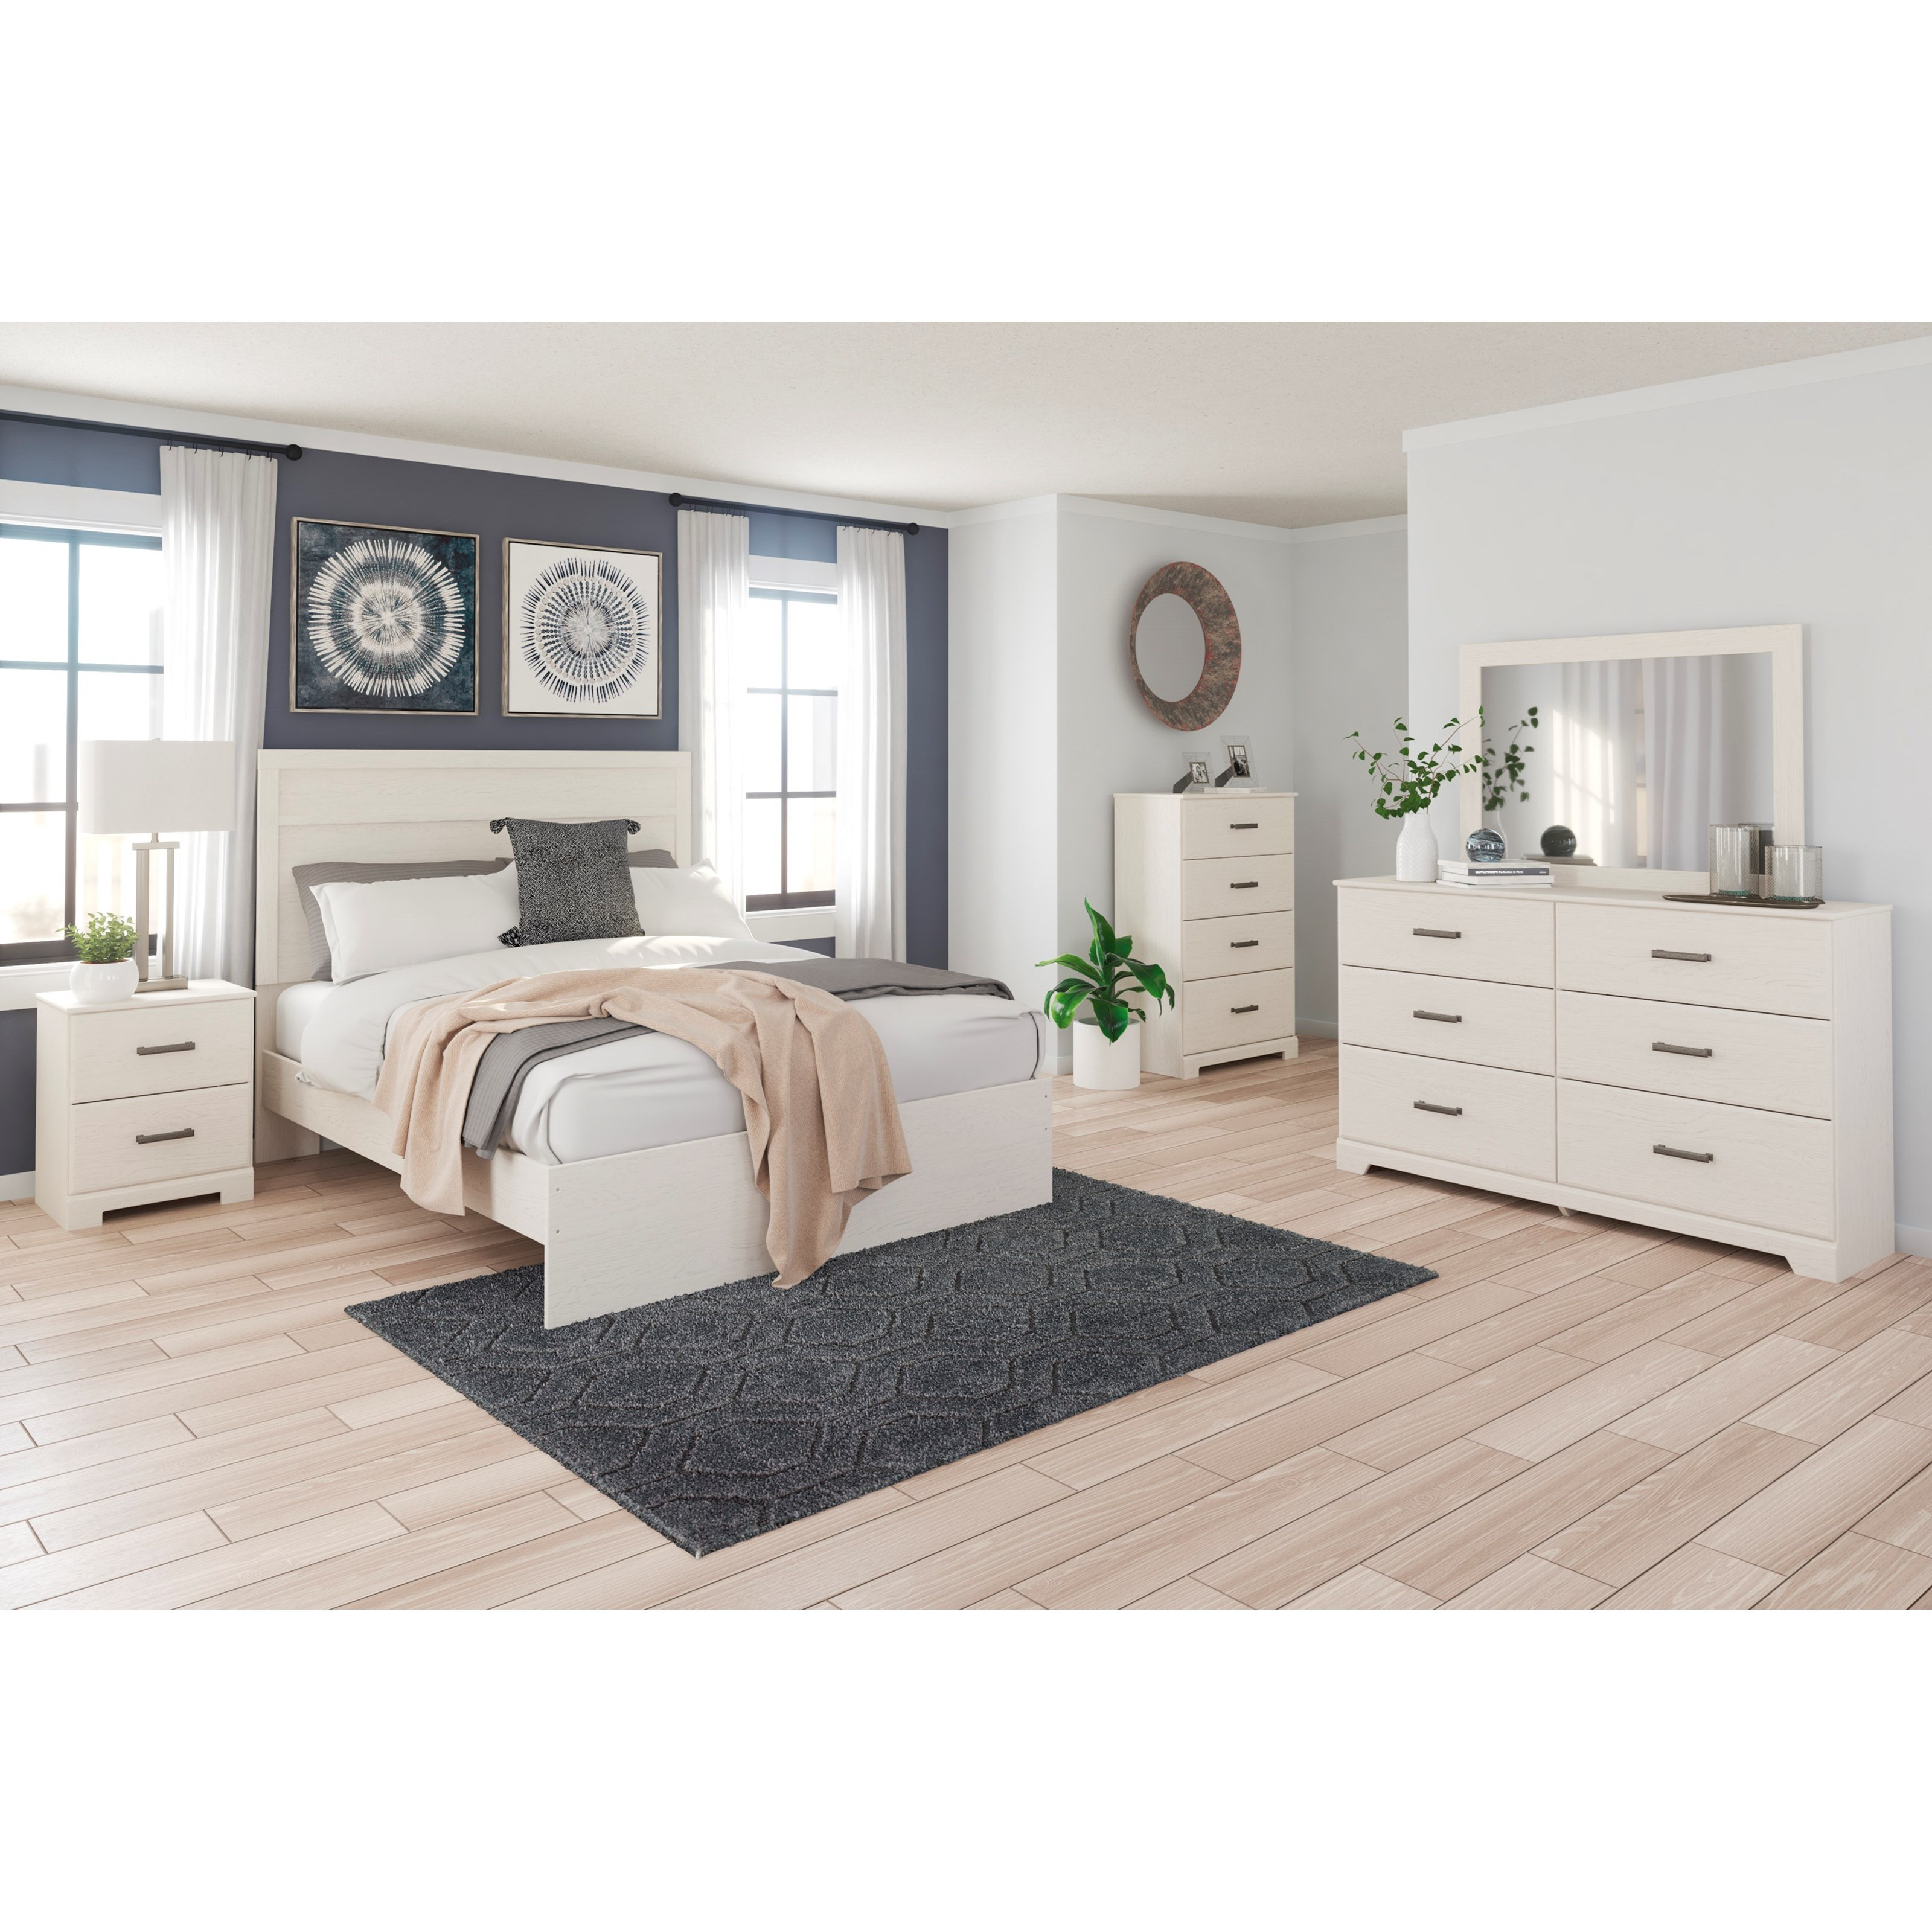 Stelsie Queen Bedroom Group by Signature Design by Ashley at Standard Furniture